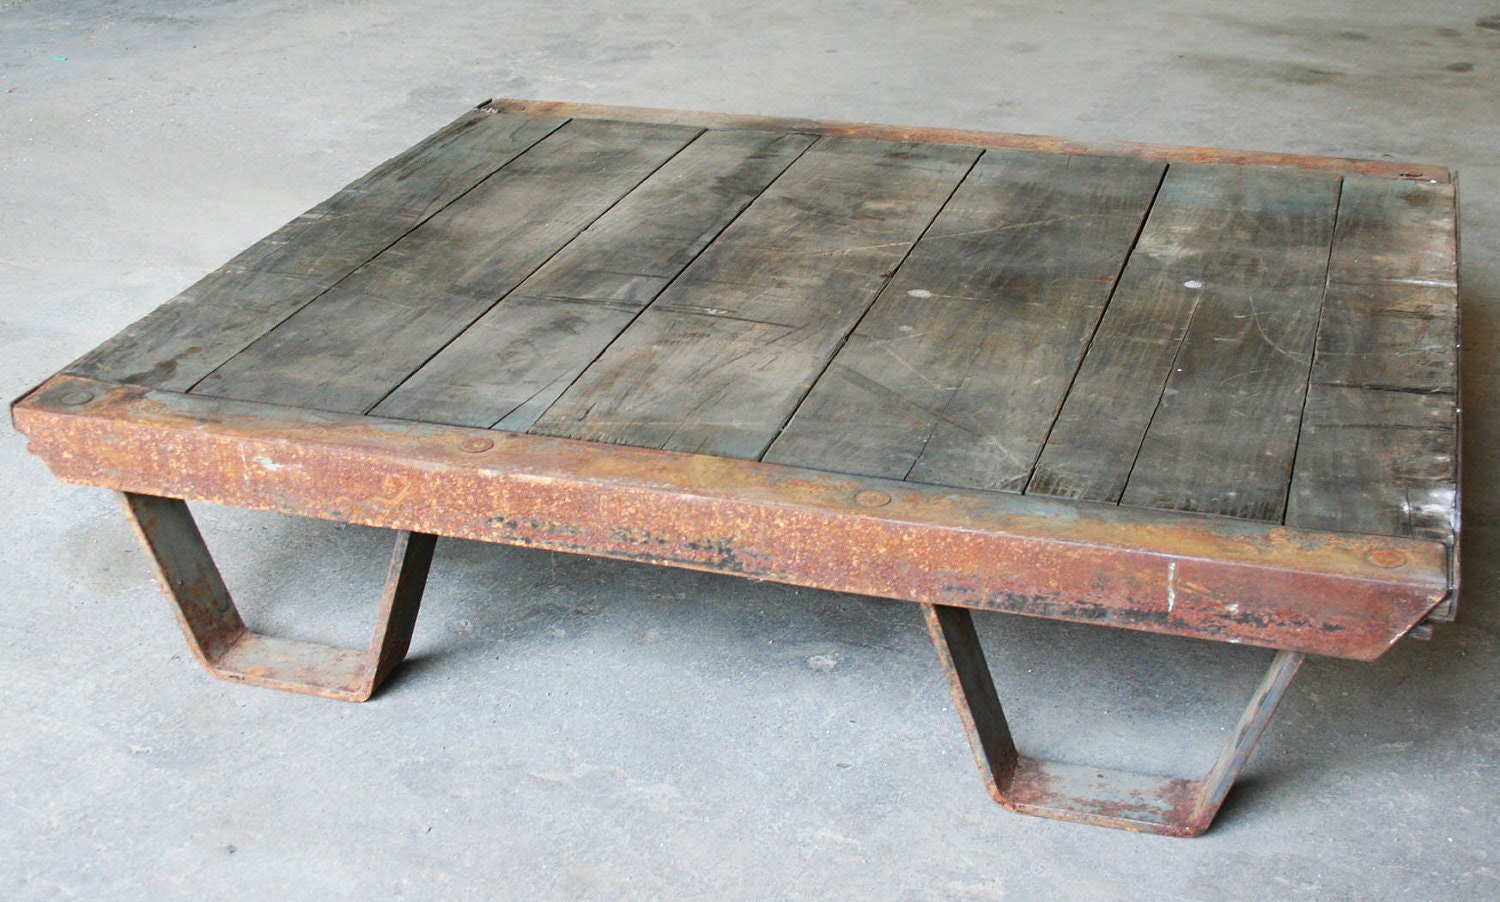 Vintage Industrial Coffee Table Pallet Industrial Furniture